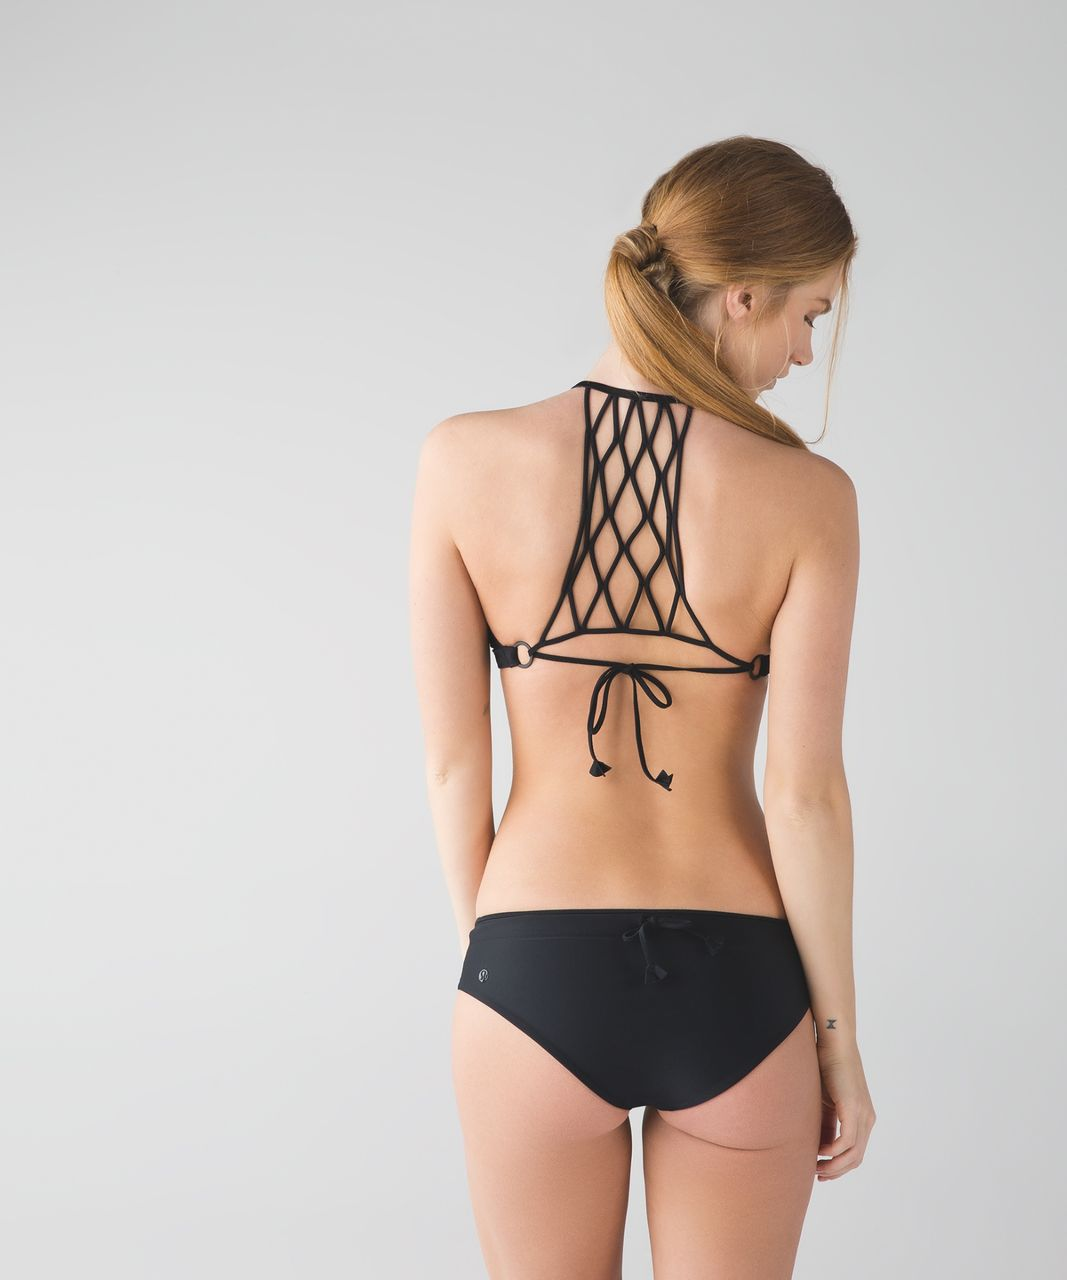 Lululemon Tidal Flow Net Top - Black